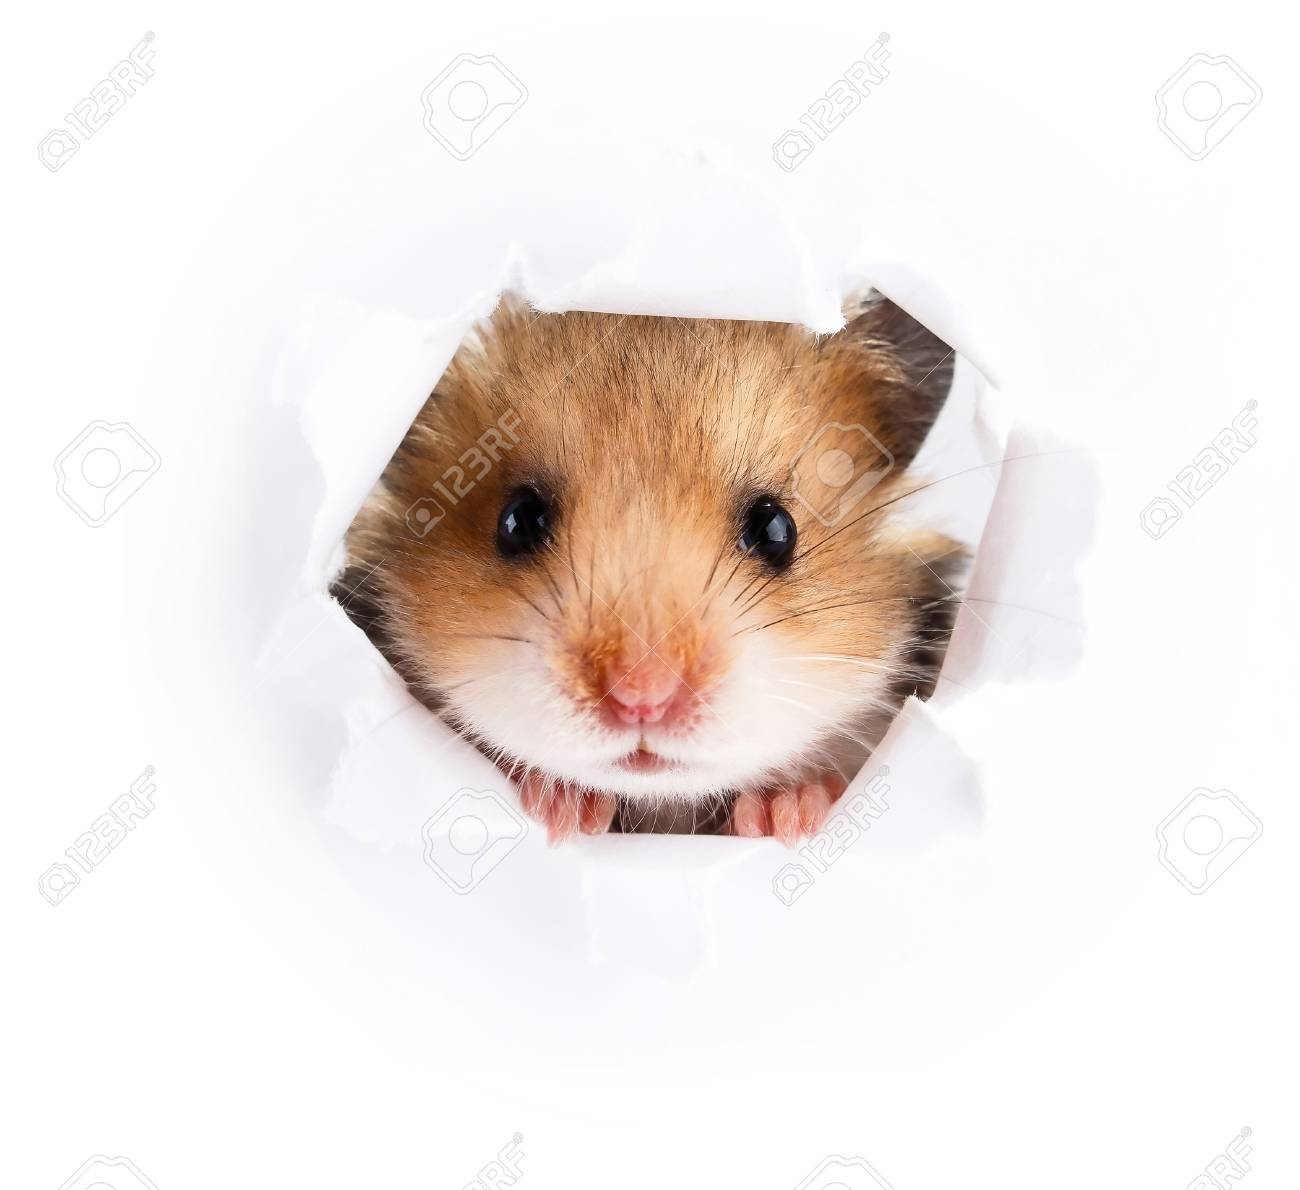 Little hamster looking up in paper side torn hole - 60889687